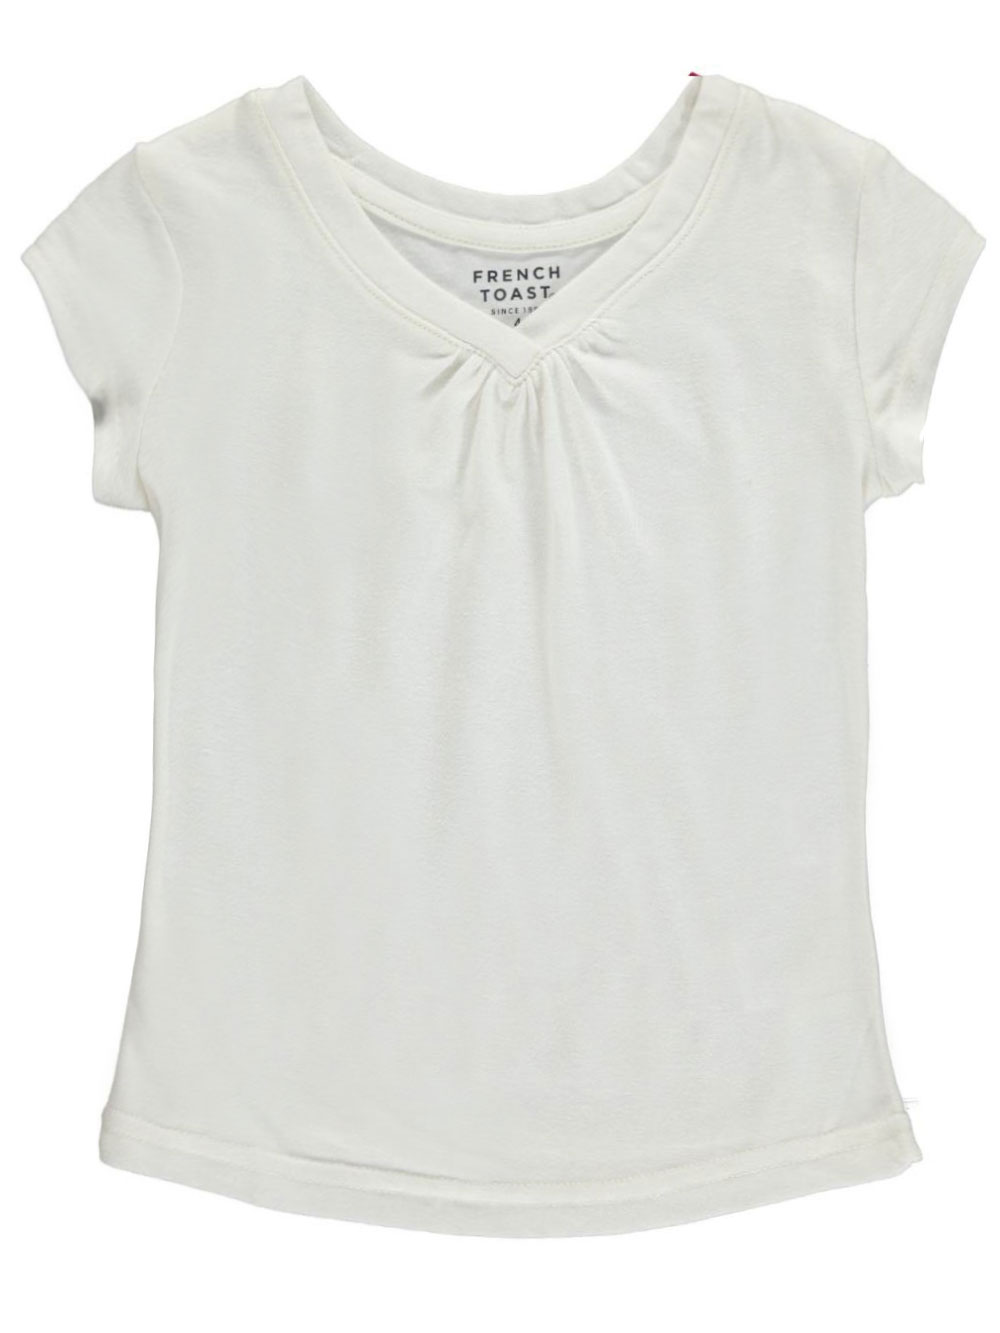 Image of French Toast Little Girls Ruched VNeck TShirt Sizes 4  6X  cream 4